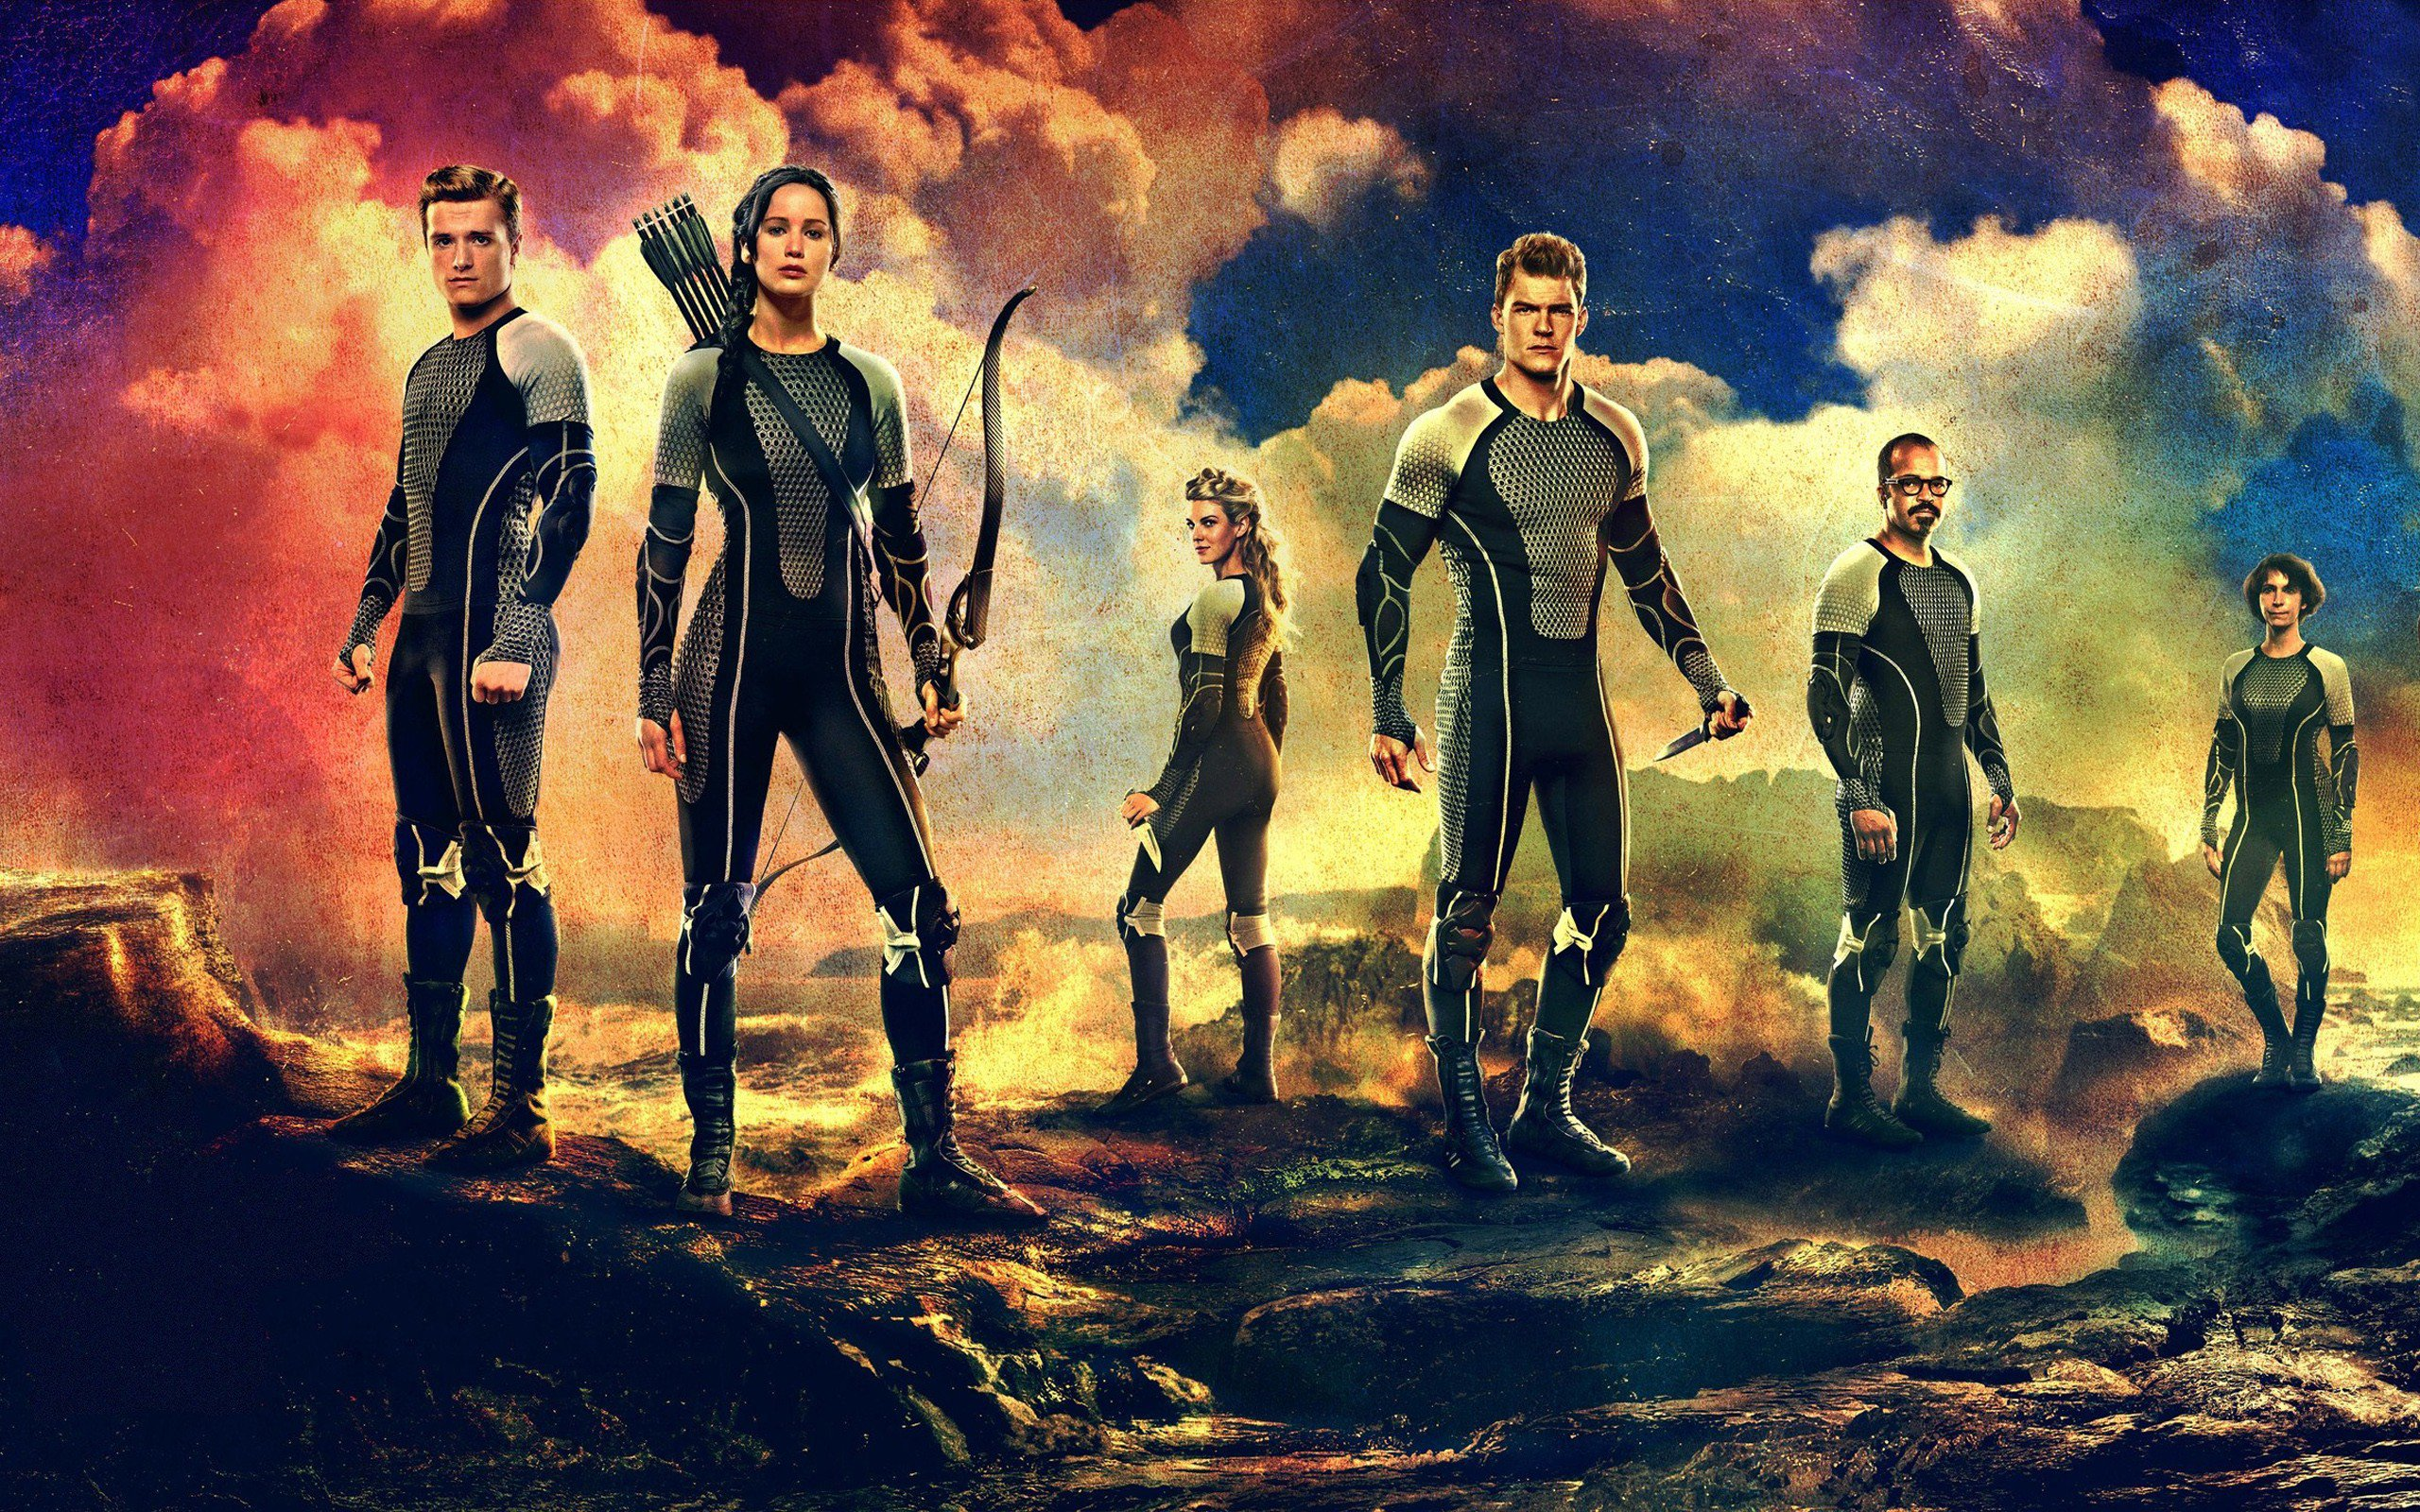 Free Download Girl Wallpaper For 360x640 The Hunger Games Catching Fire Hd Movies 4k Wallpapers